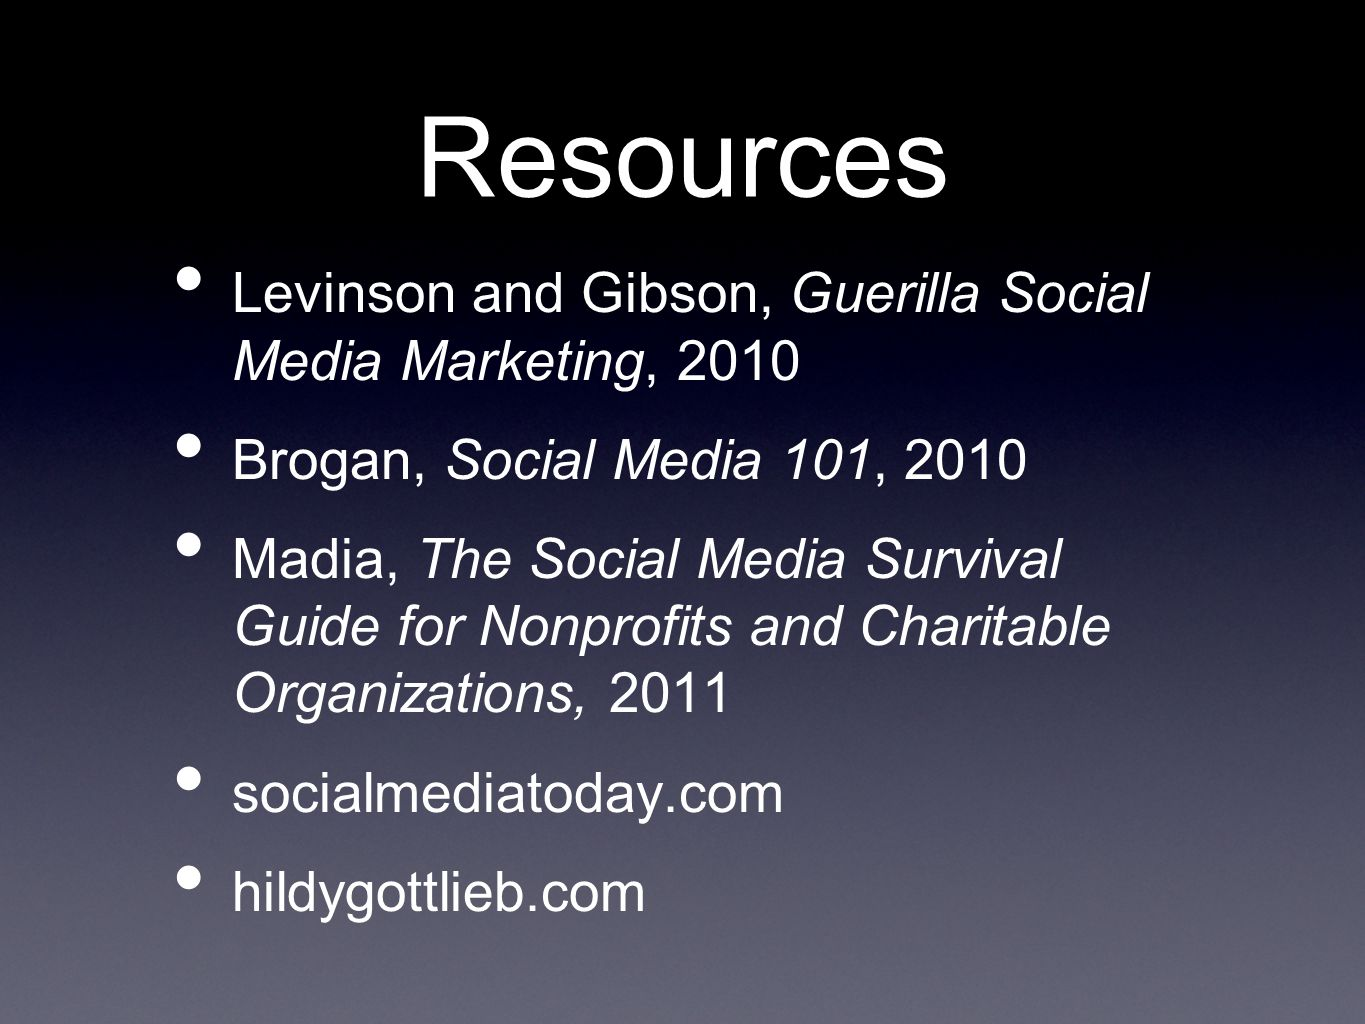 Resources Levinson and Gibson, Guerilla Social Media Marketing, 2010 Brogan, Social Media 101, 2010 Madia, The Social Media Survival Guide for Nonprofits and Charitable Organizations, 2011 socialmediatoday.com hildygottlieb.com